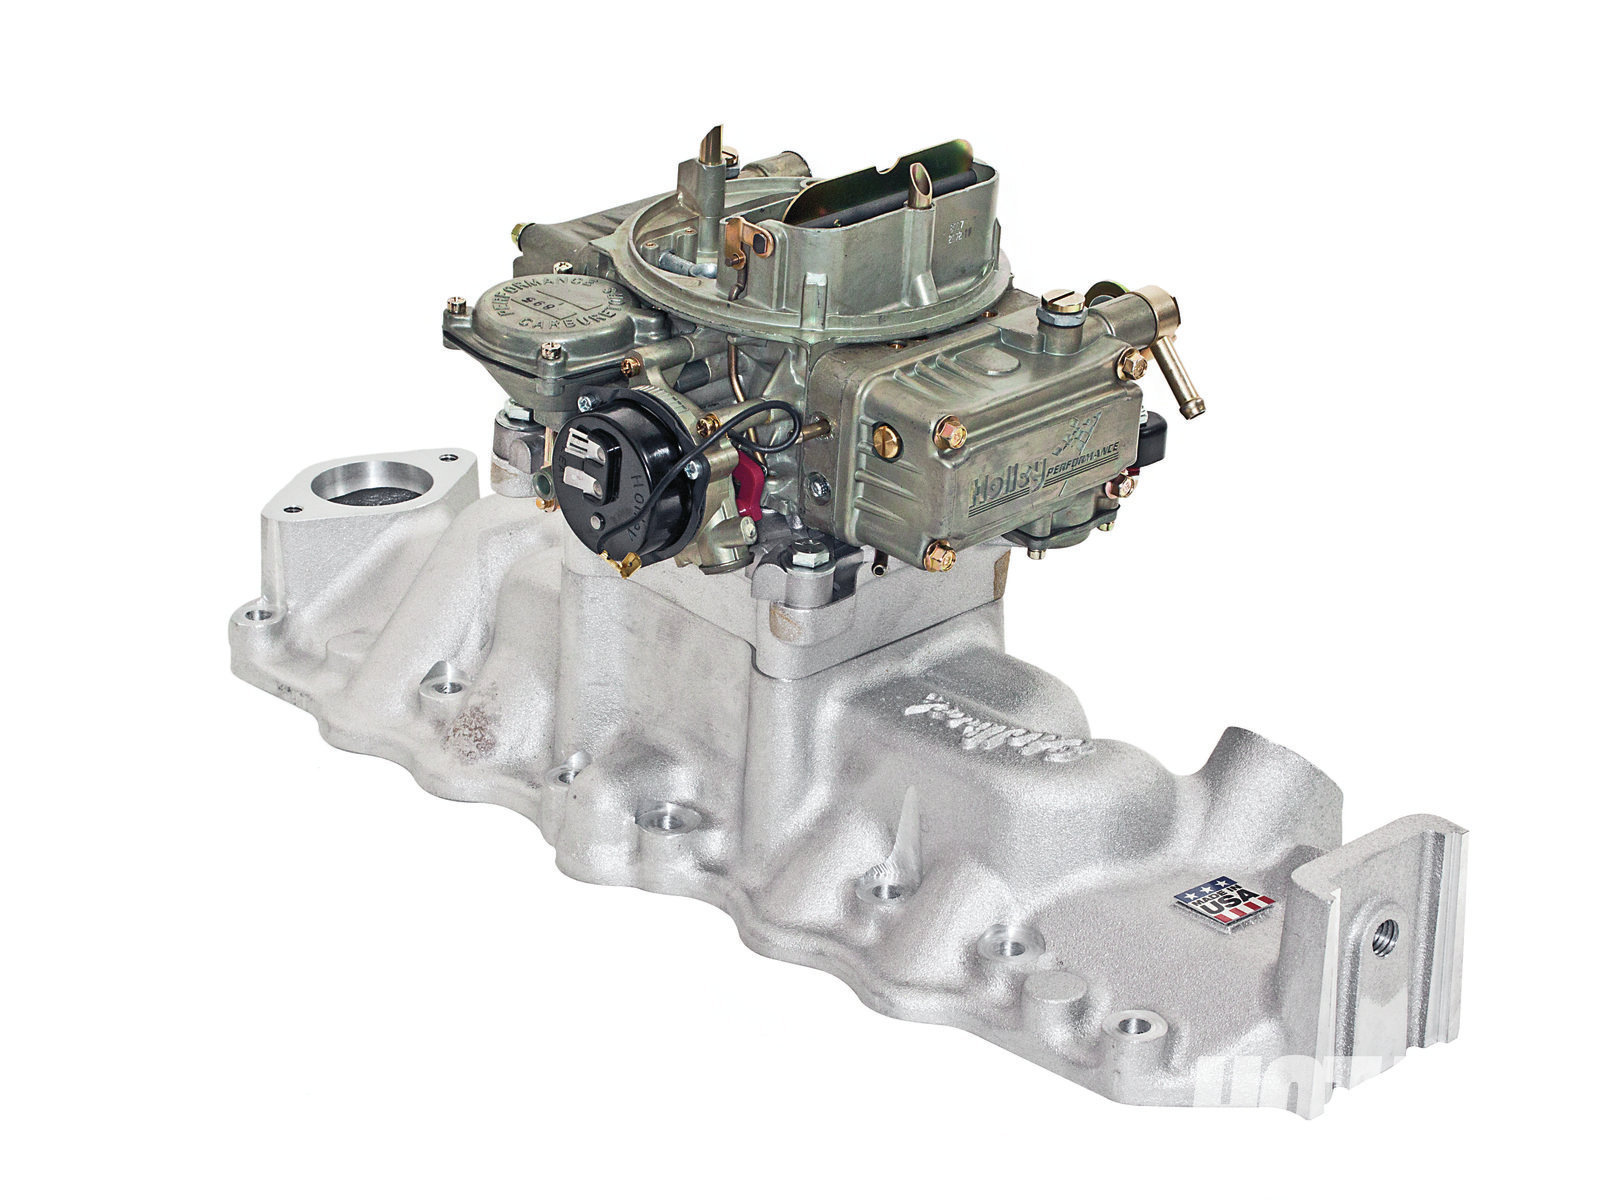 The Edelbrock was the second strongest four-barrel manifold tested. We used Edelbrock's 2½-inch-tall spacer adapter (PN 1701) on all the quad intakes so the 390 Holley would clear the side water outlets and hoses on the '49–'53-style test engine.